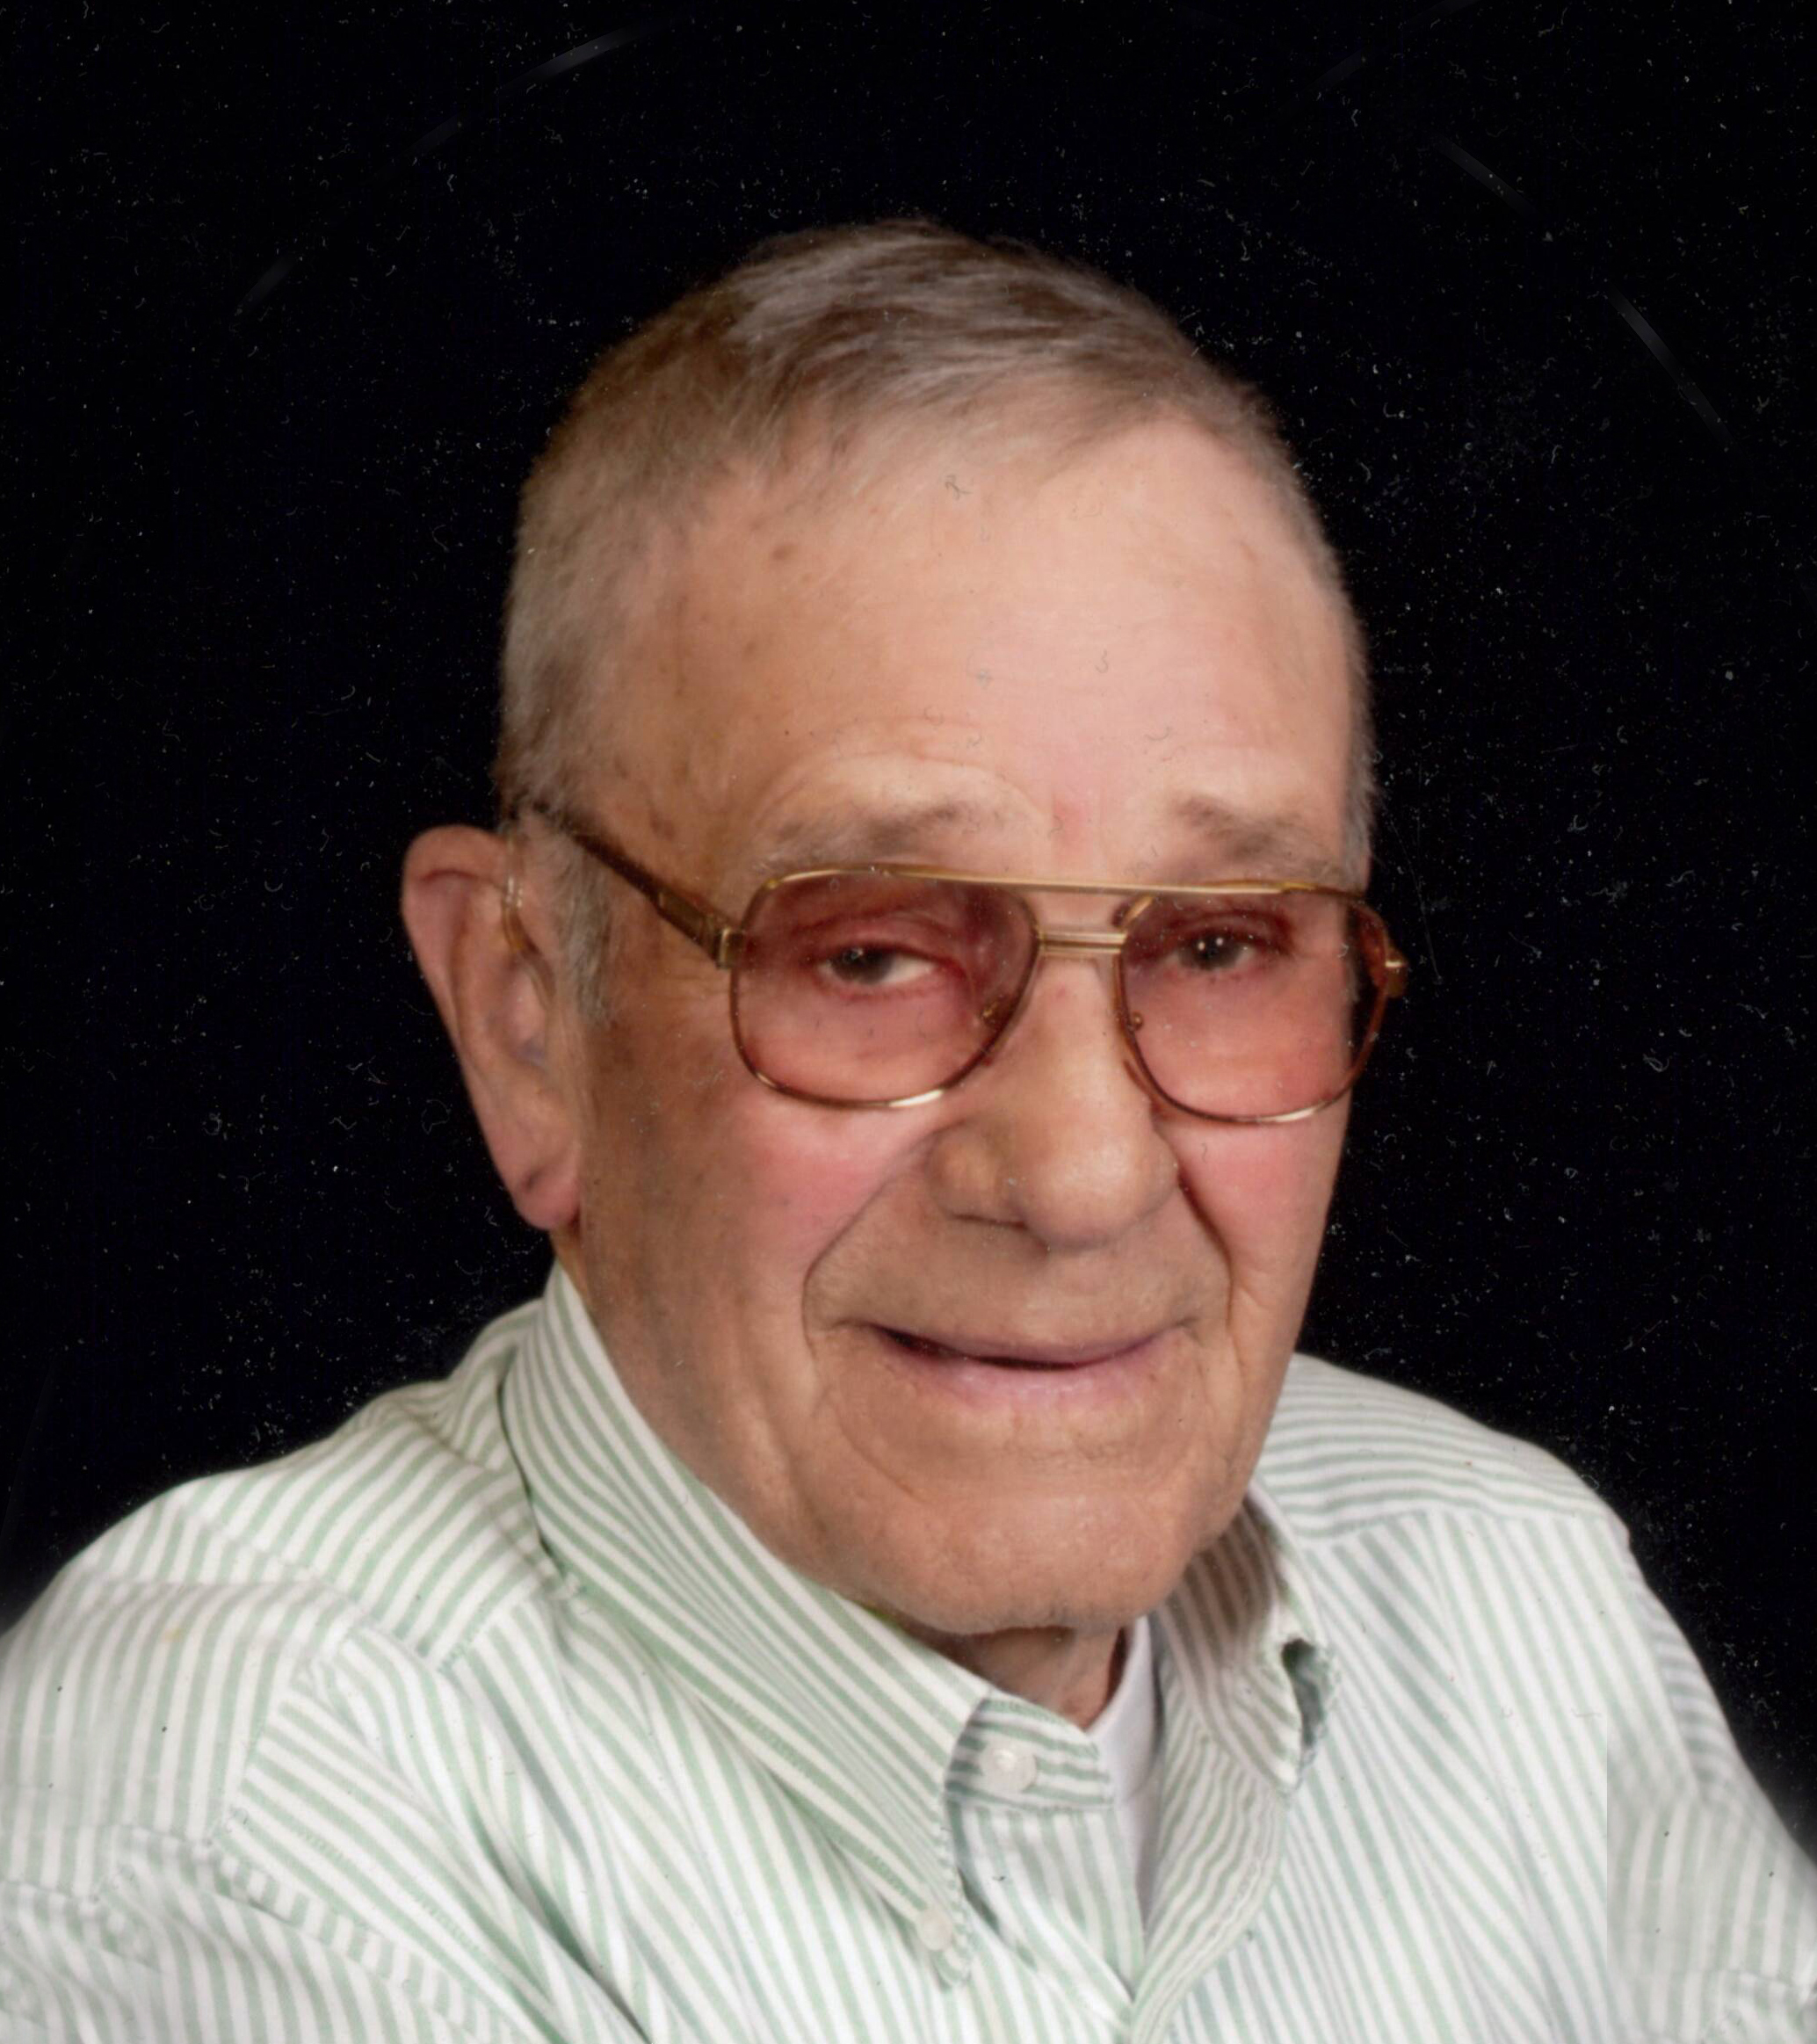 Charles Fredrick Johnson, 86 years of age, of Holdrege